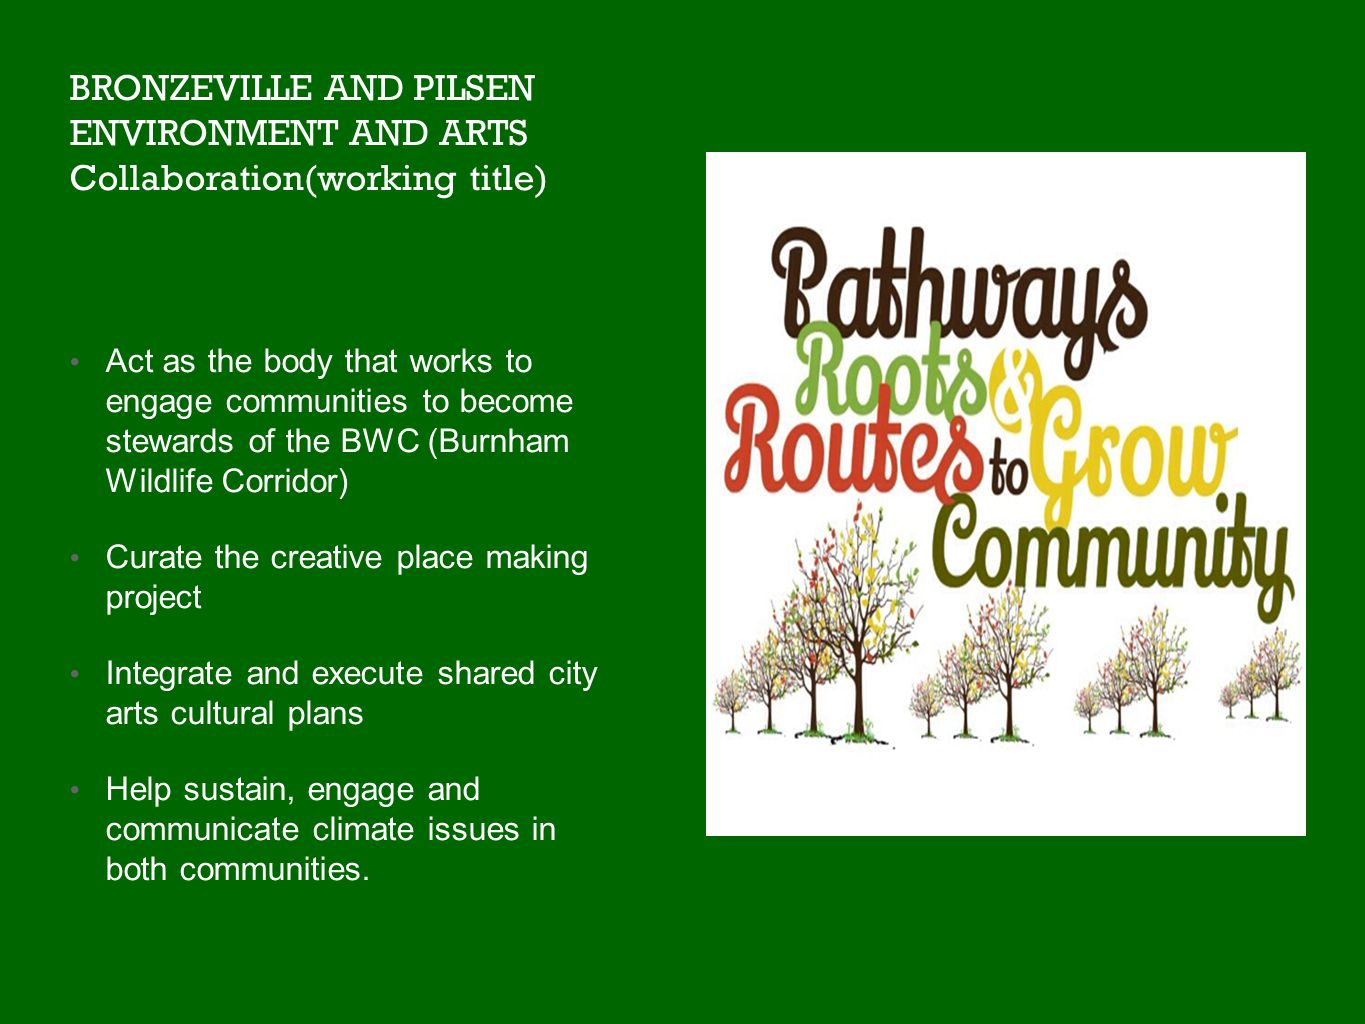 BRONZEVILLE AND PILSEN ENVIRONMENT AND ARTS Collaboration(working title) Act as the body that works to engage communities to become stewards of the BWC (Burnham Wildlife Corridor) Curate the creative place making project Integrate and execute shared city arts cultural plans Help sustain, engage and communicate climate issues in both communities.